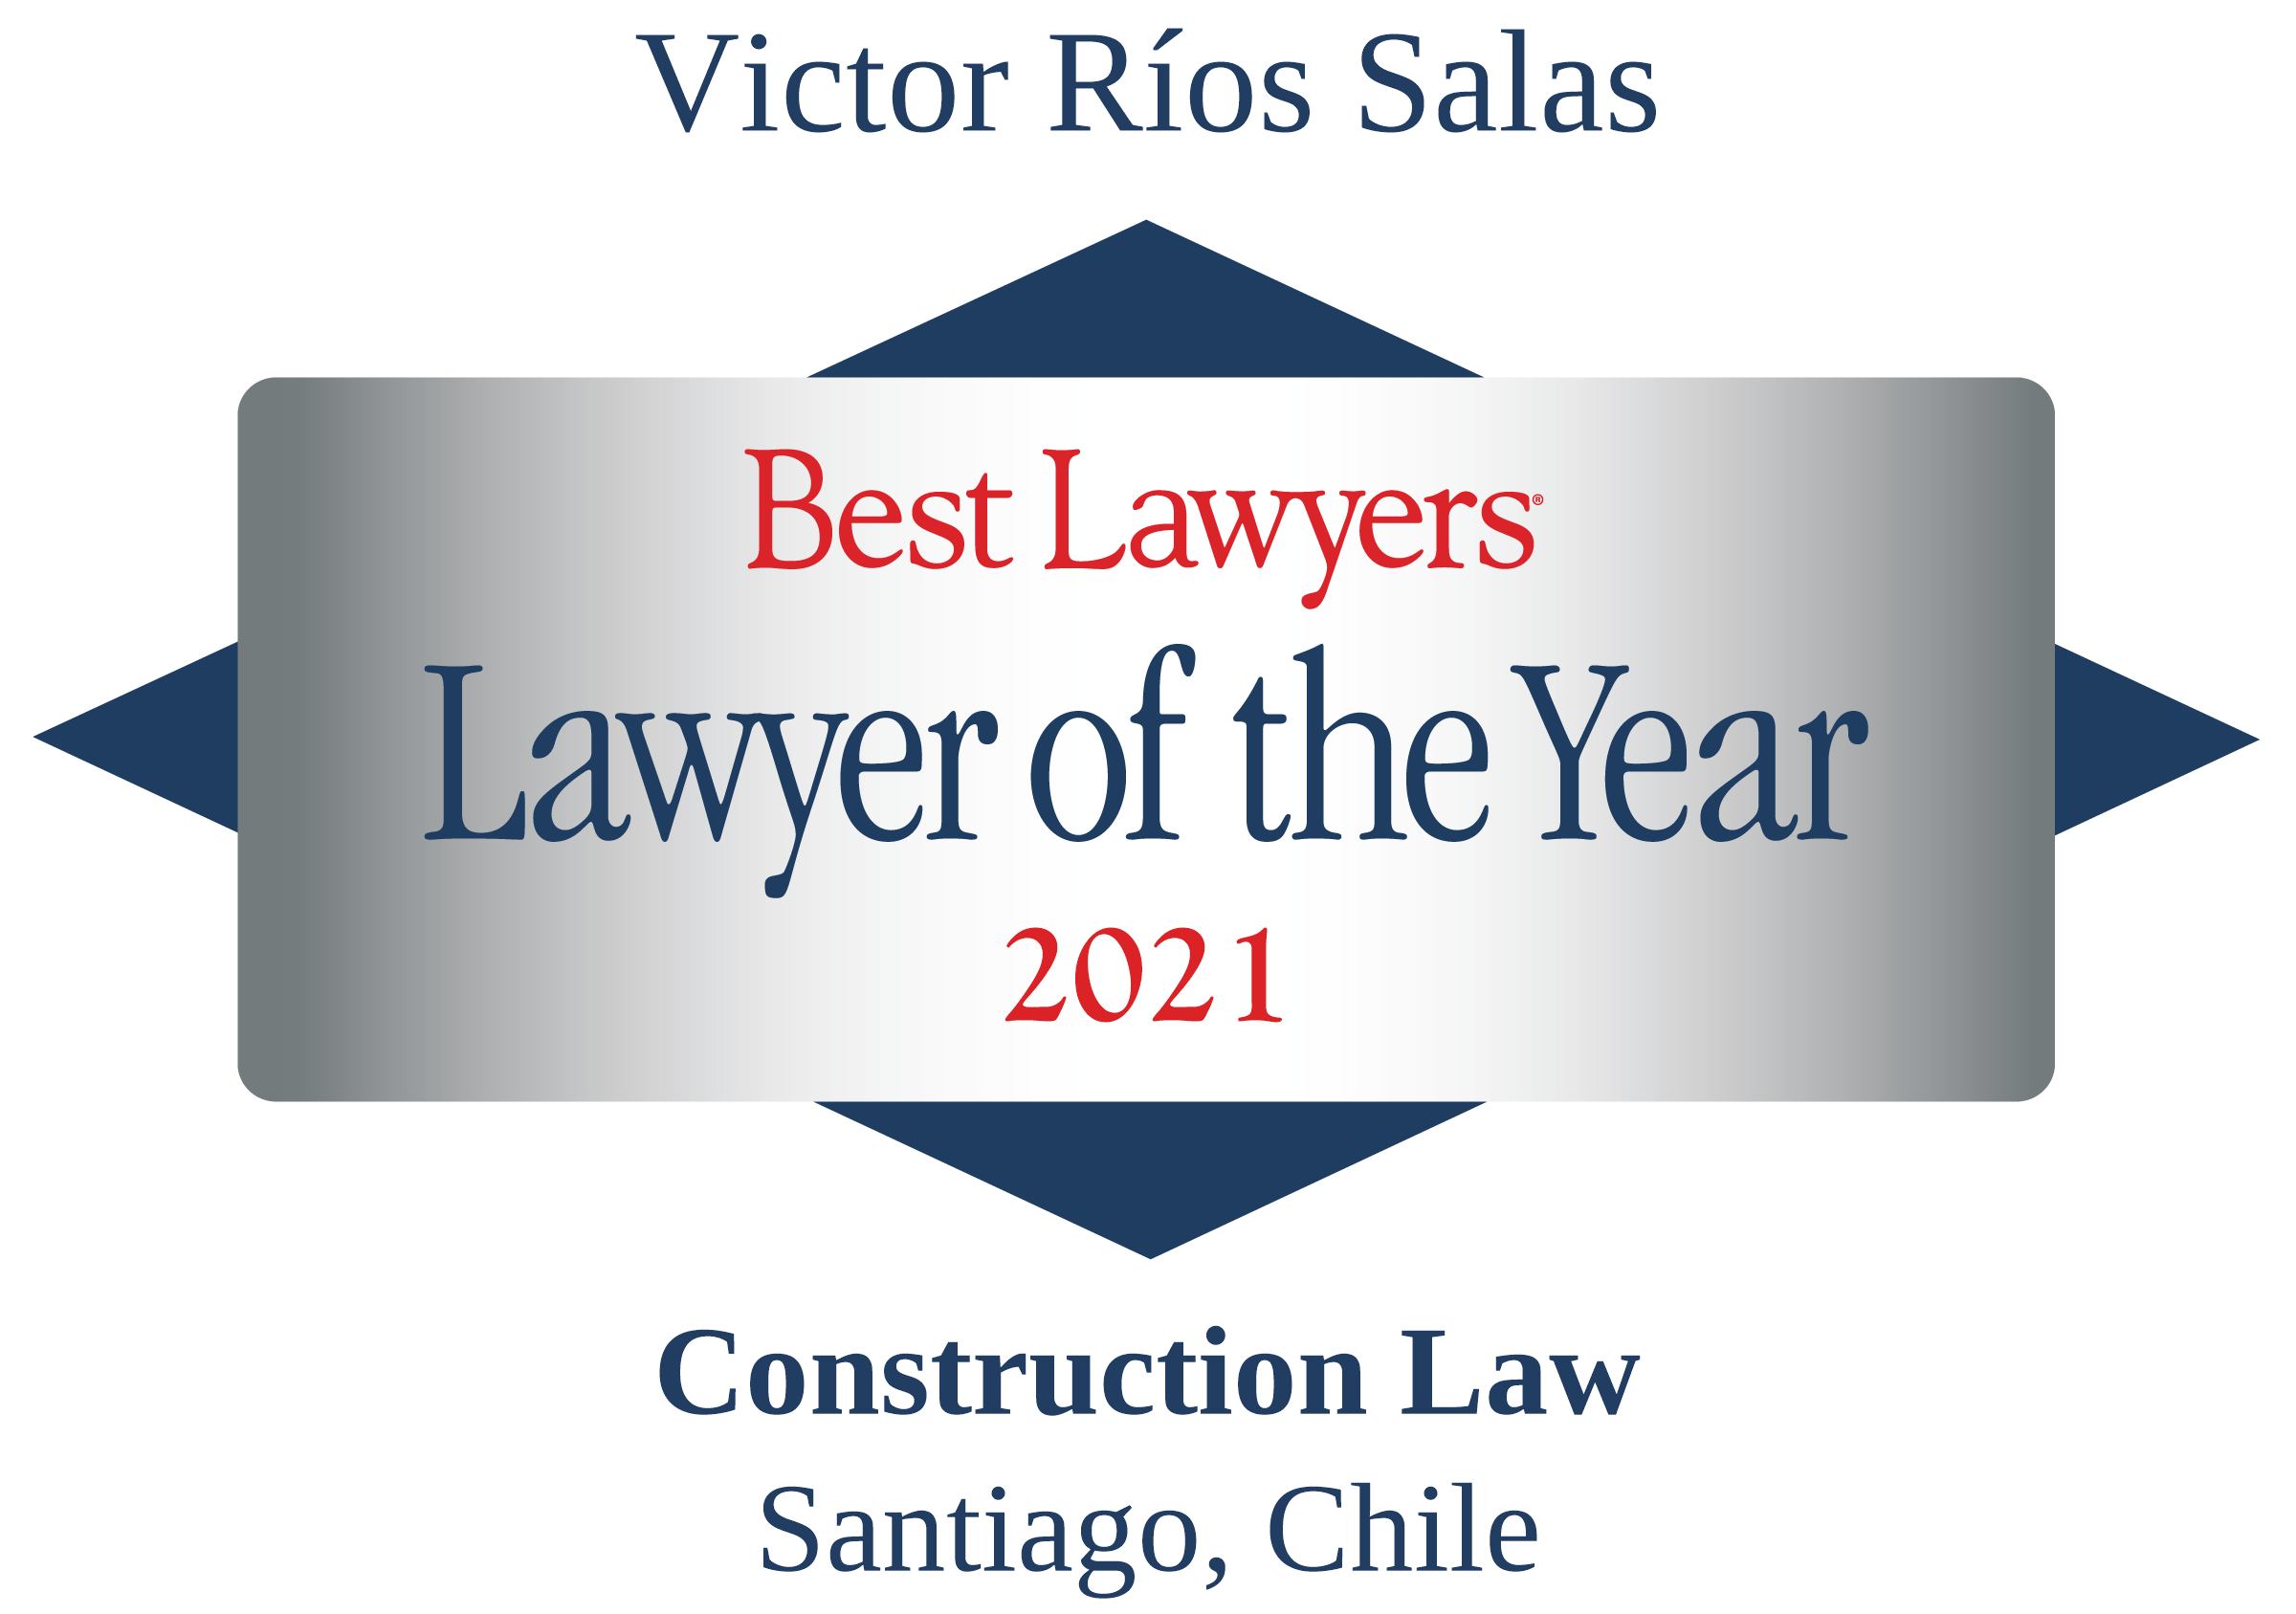 Best Lawyers - _Lawyer of the Year_ Traditional Logo